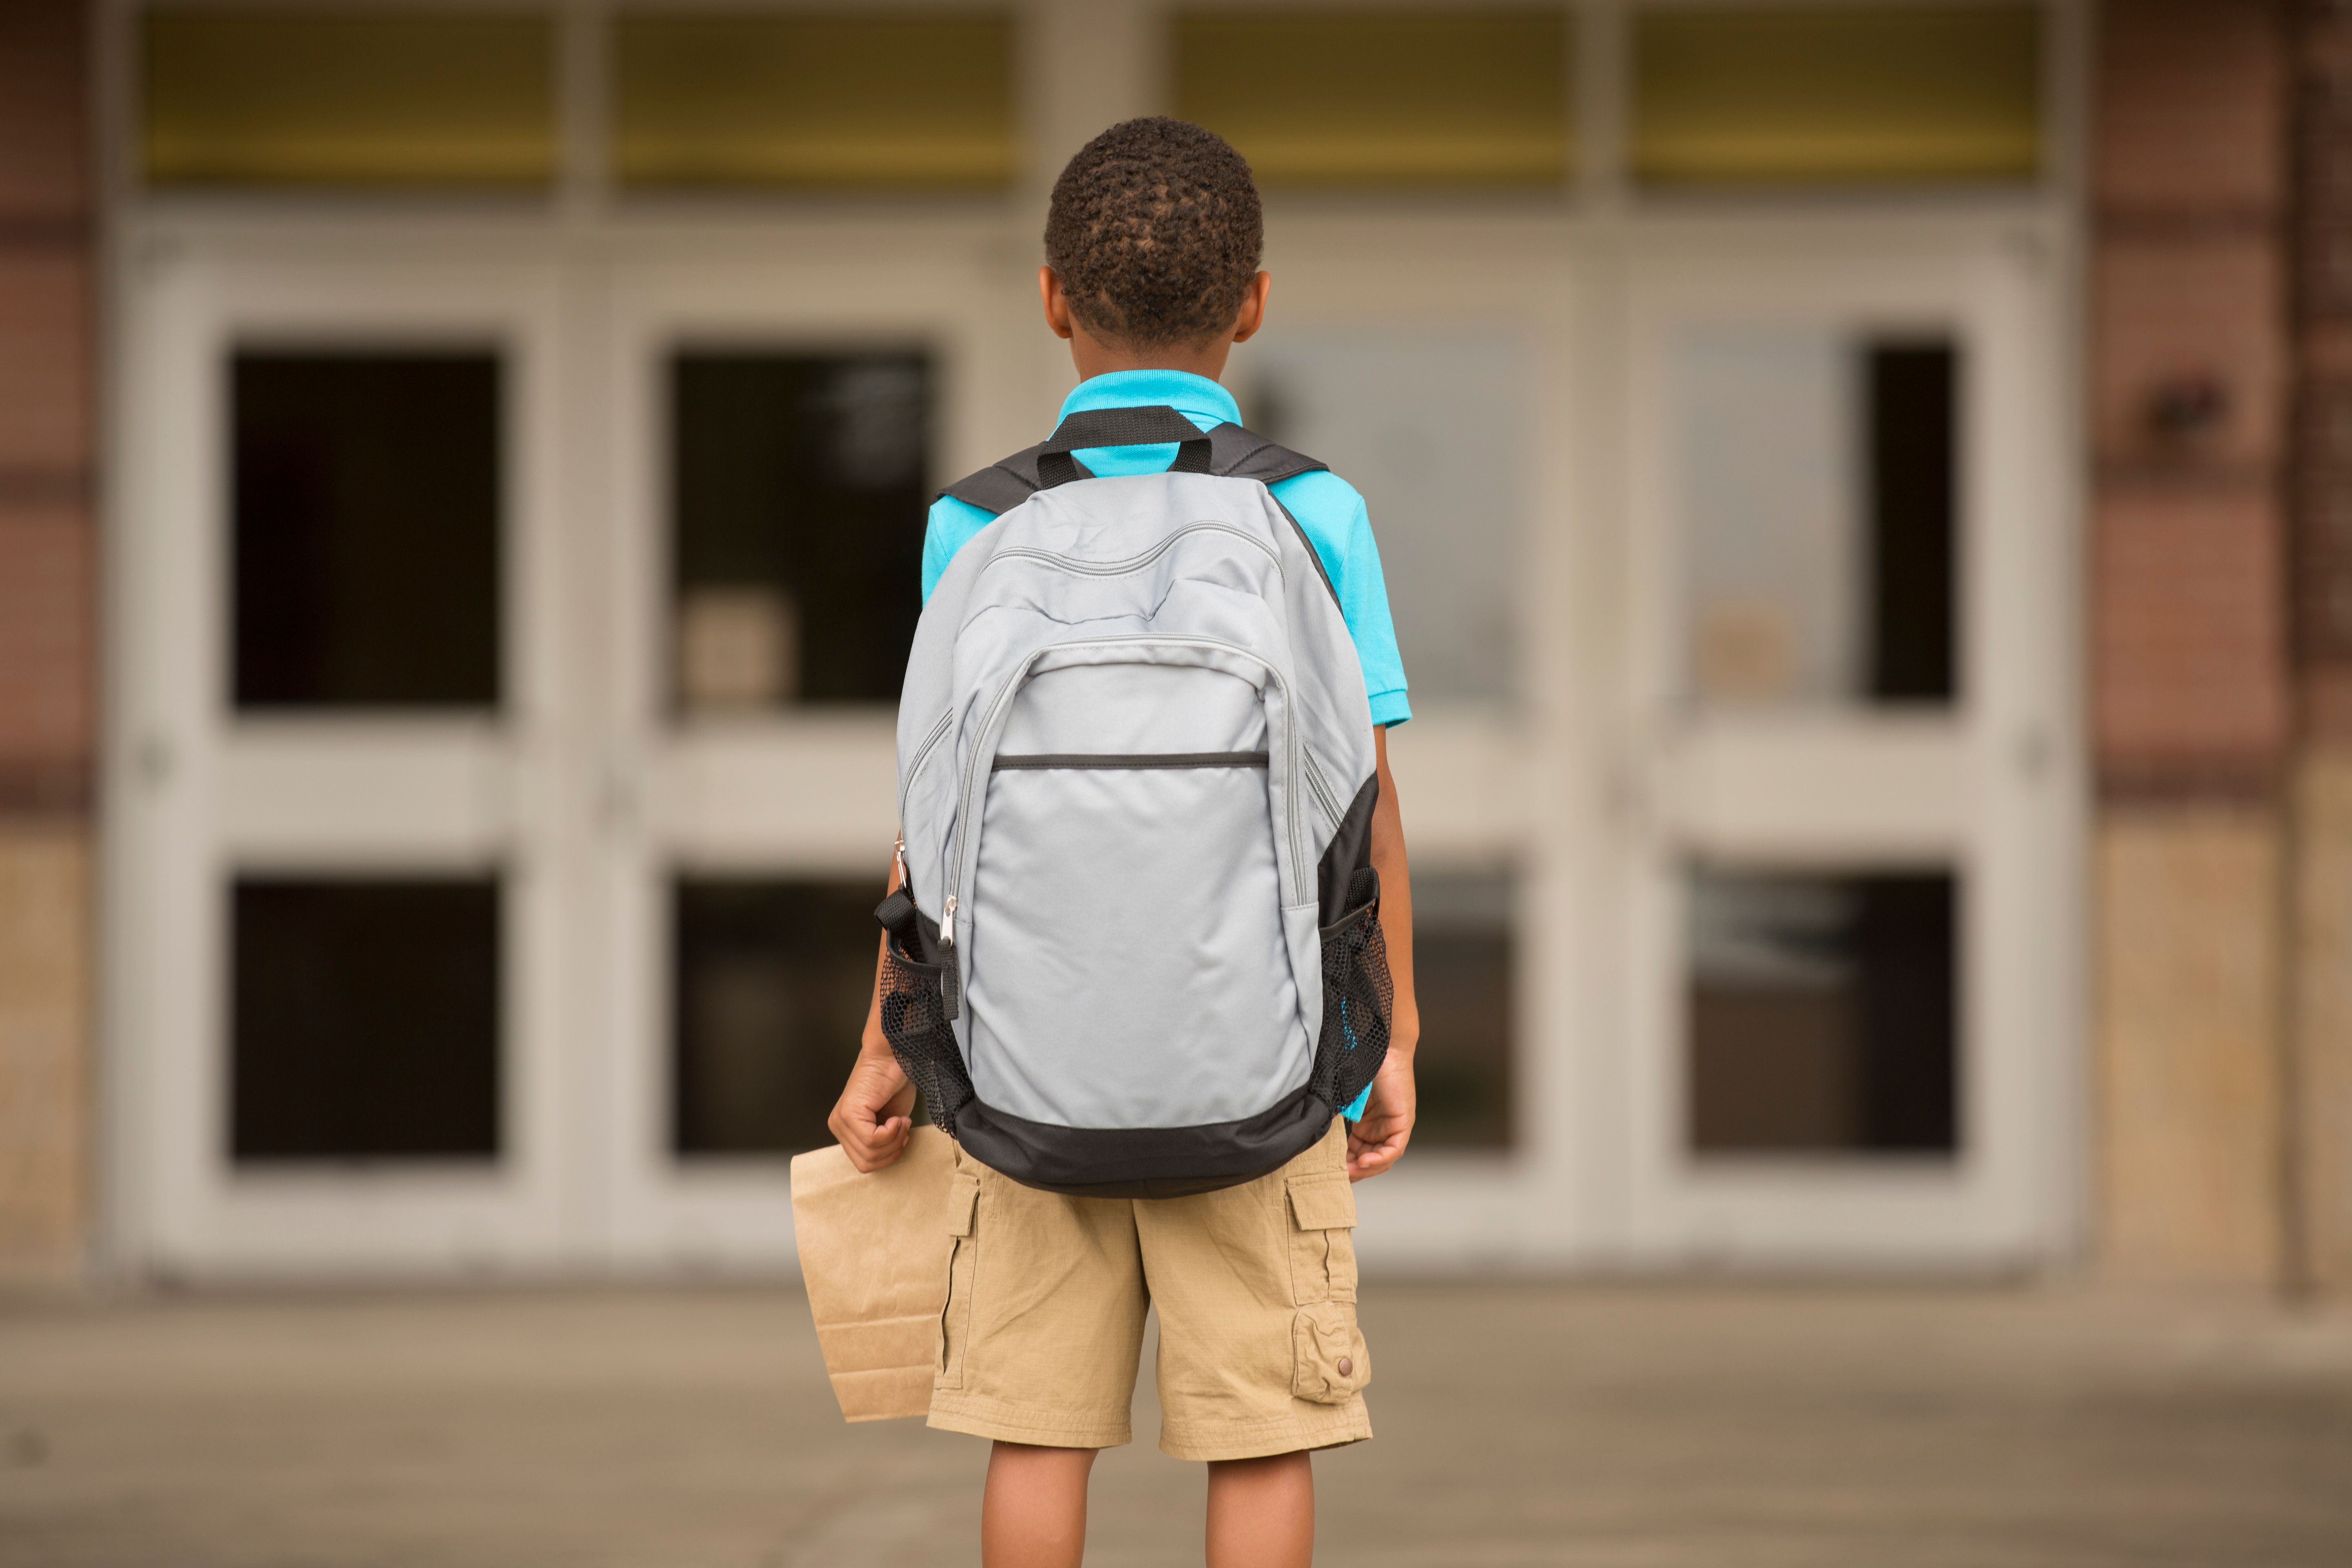 Segregated Schools In St. Louis Are Not An Accident